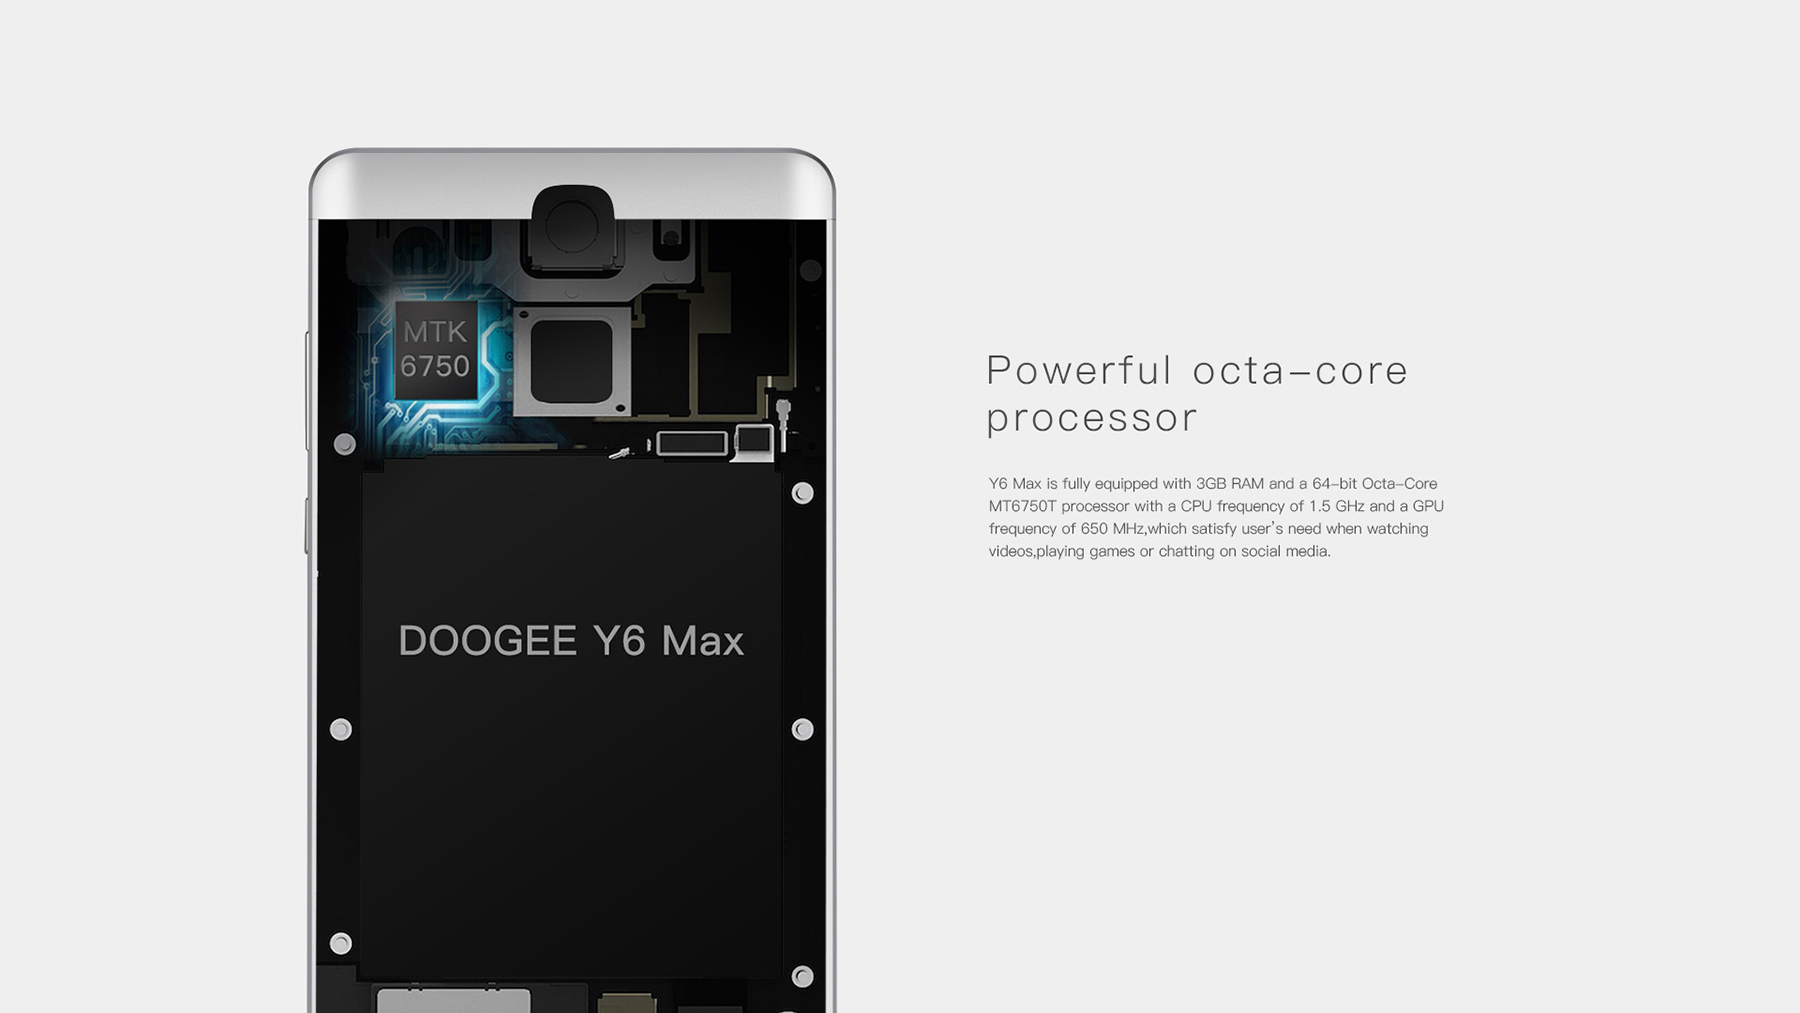 DOOGEE Y6 Max Android 6.0 6.5 inch 4G Phablet MTK6750 Octa Core 1.5GHz 3GB RAM 32GB ROM 13.0MP Rear Camera